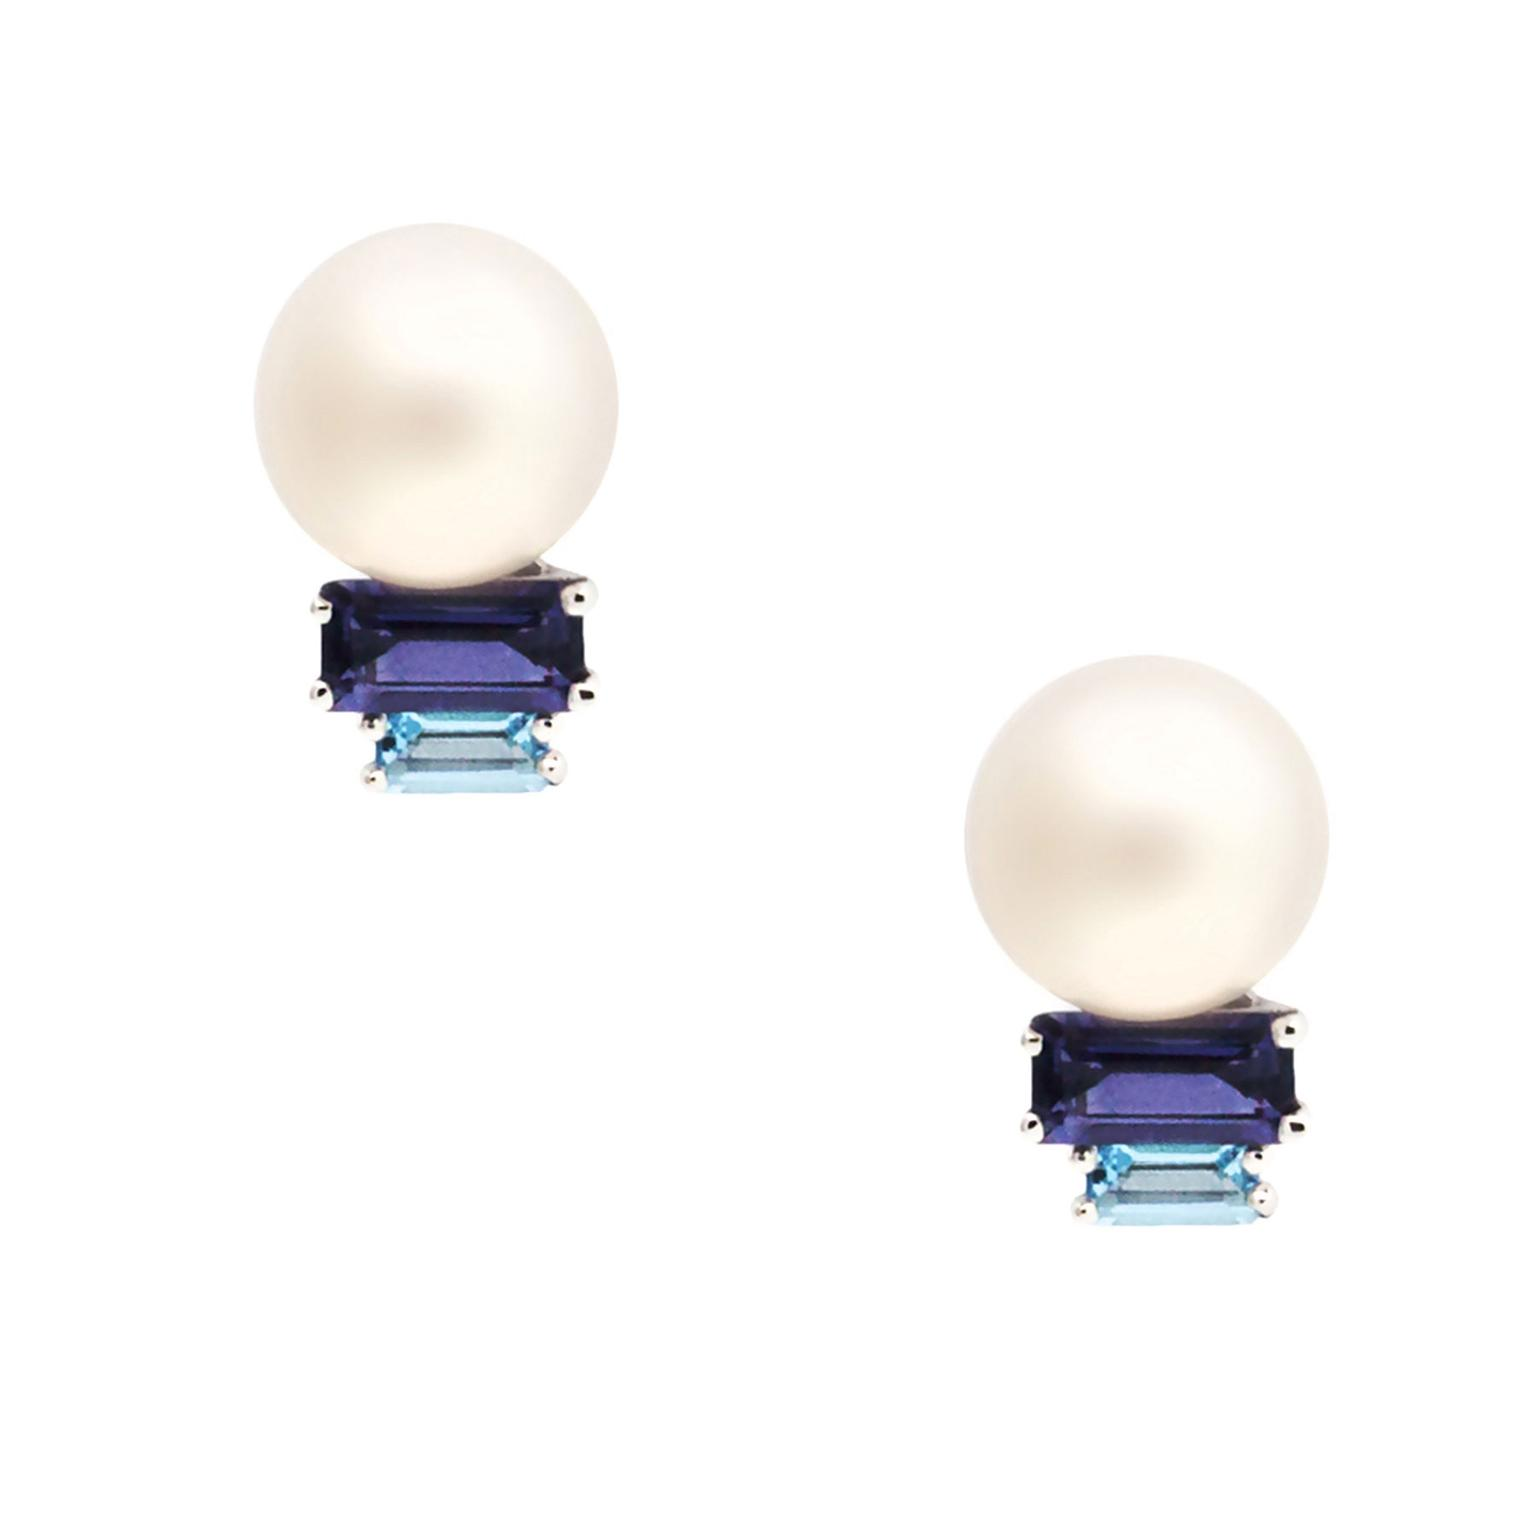 Daou Morning Lite pearl earrings